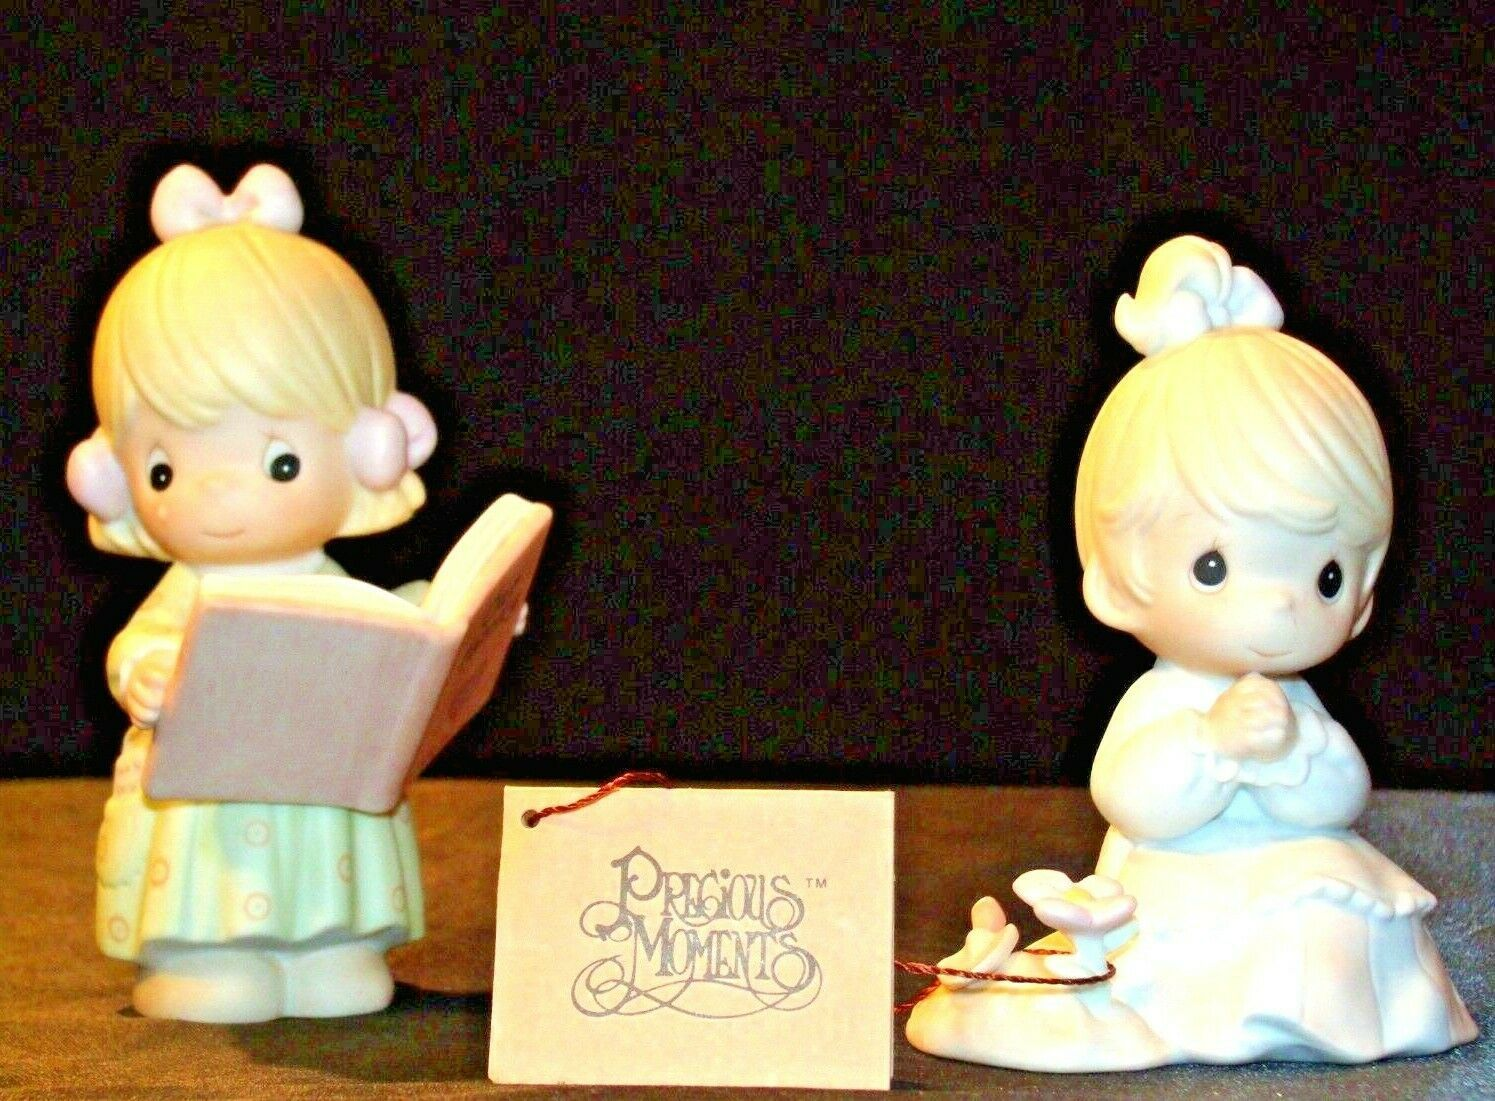 Precious Figurines Moments  731129 and PM922 AA-191839  Vintage Collectible